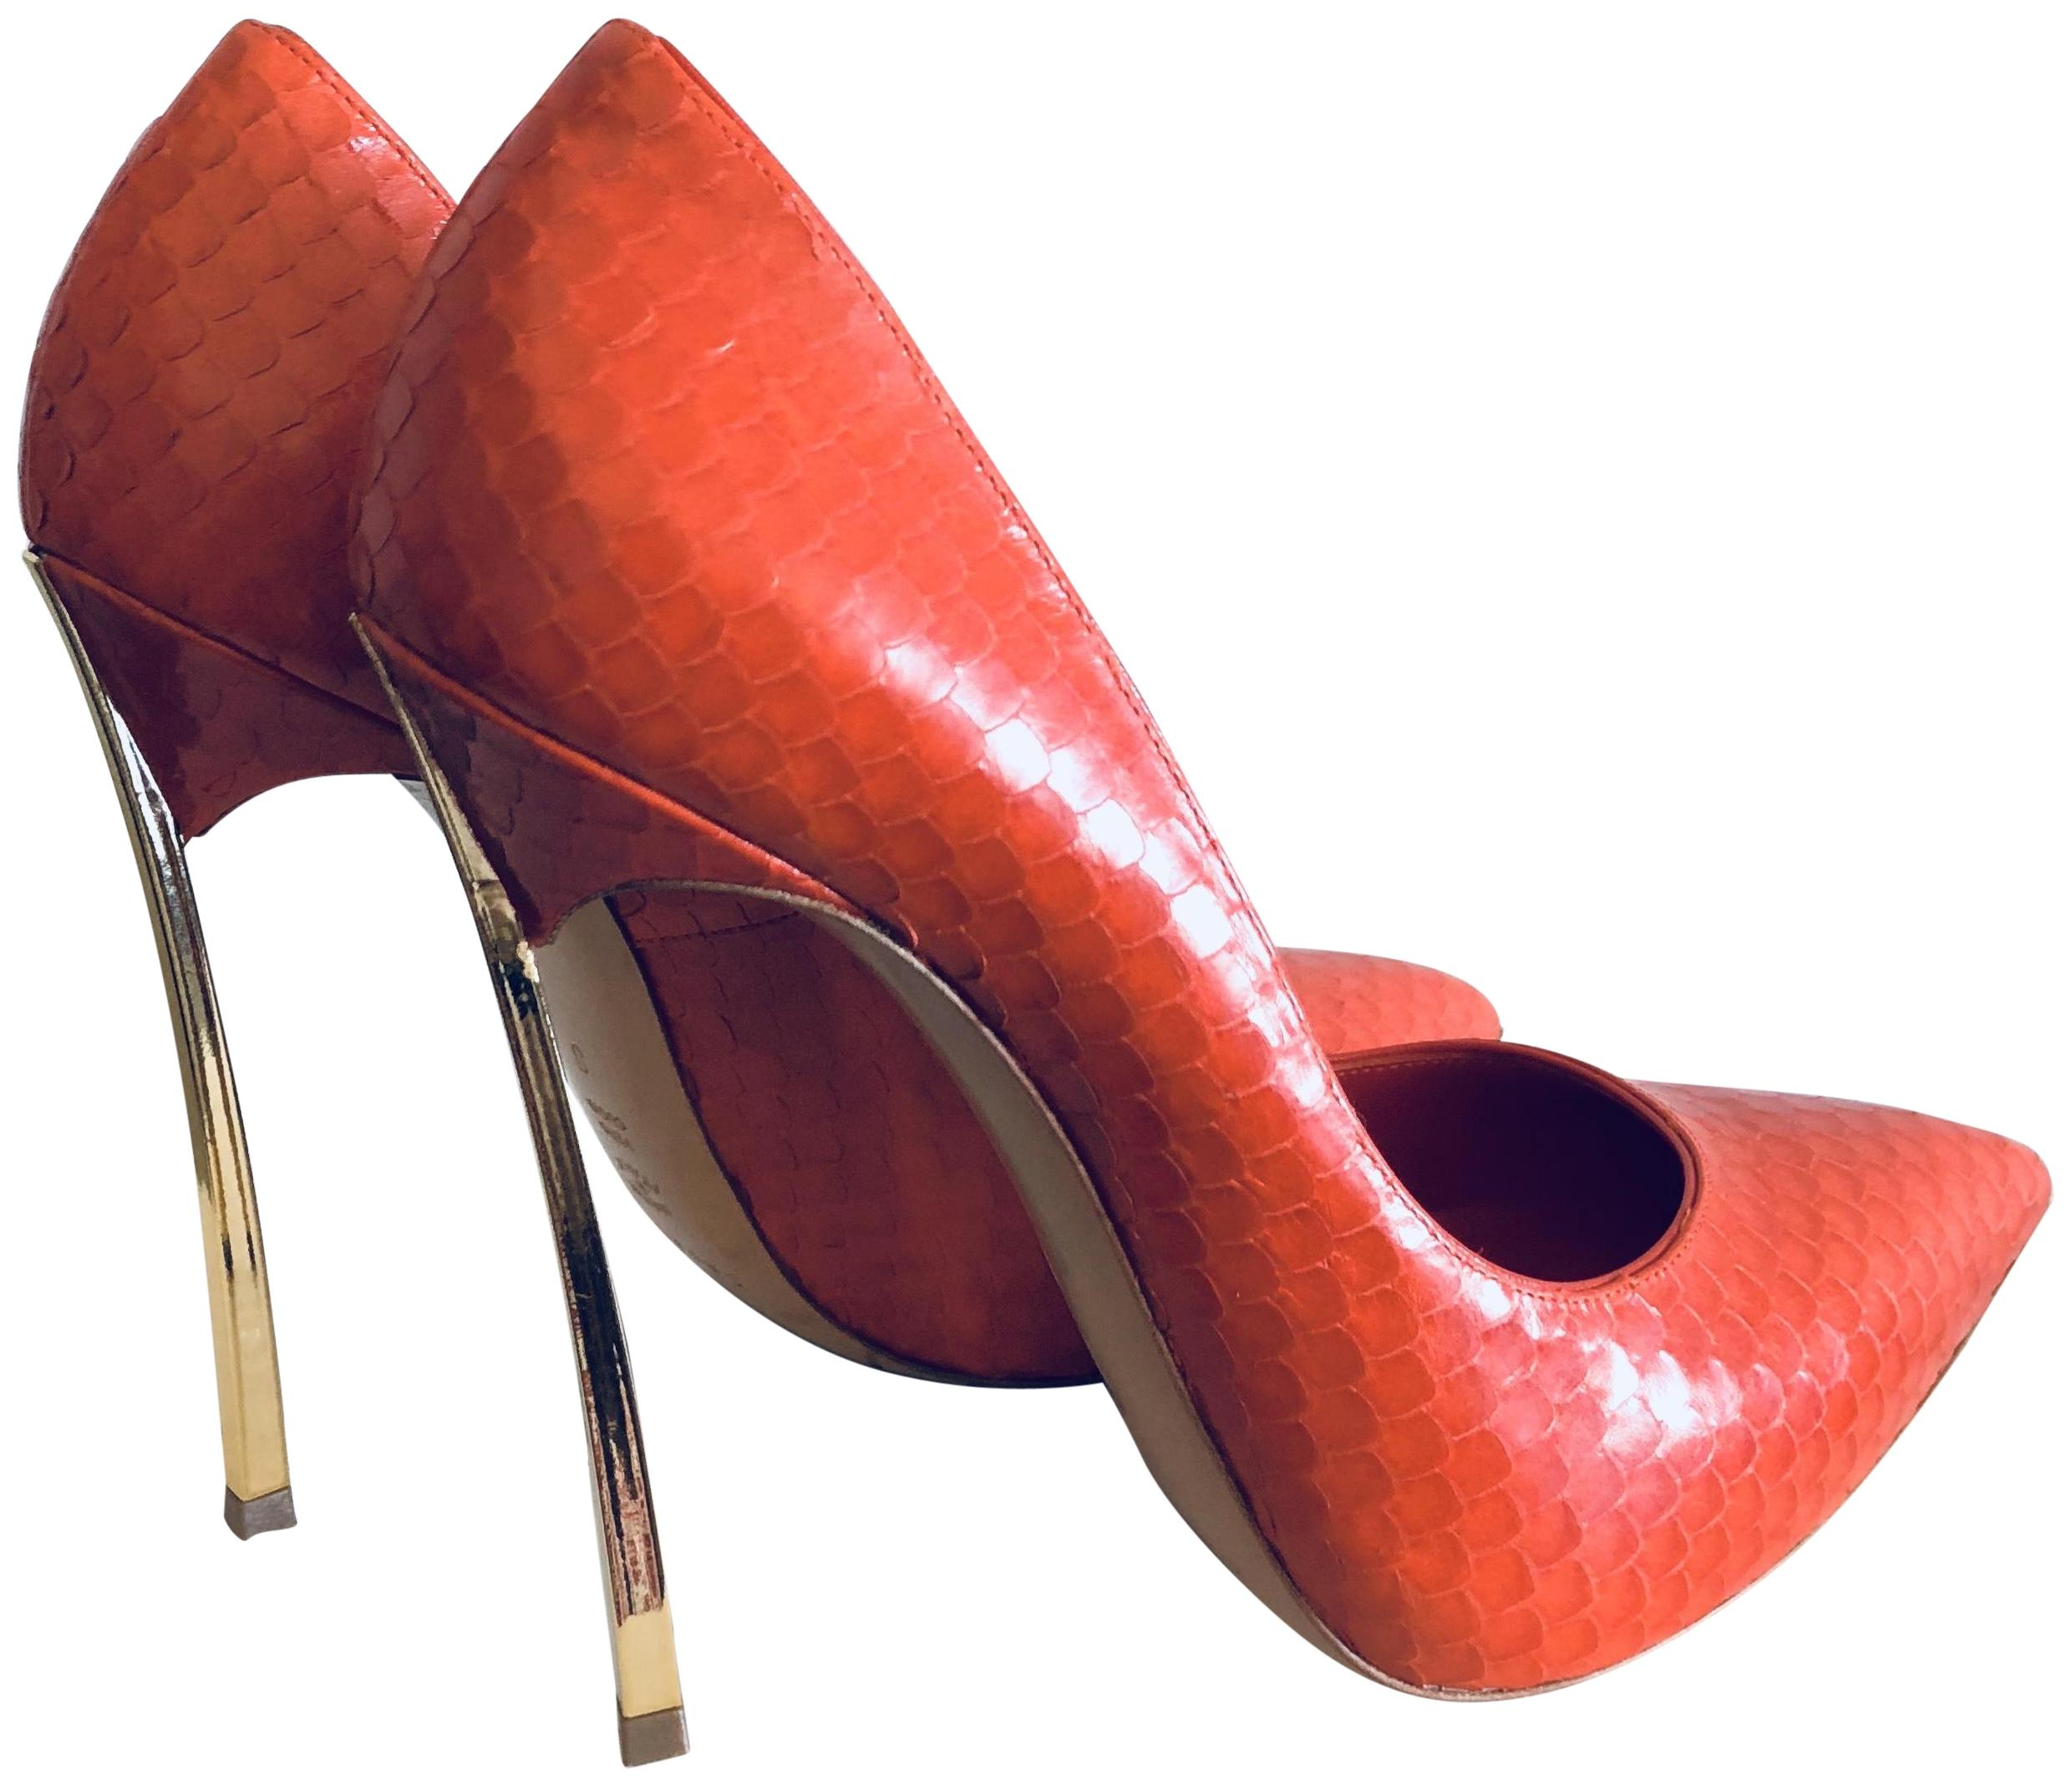 Casadei Red Blade Snakeskin Leather In Pumps Size US 8 Regular (M, B)